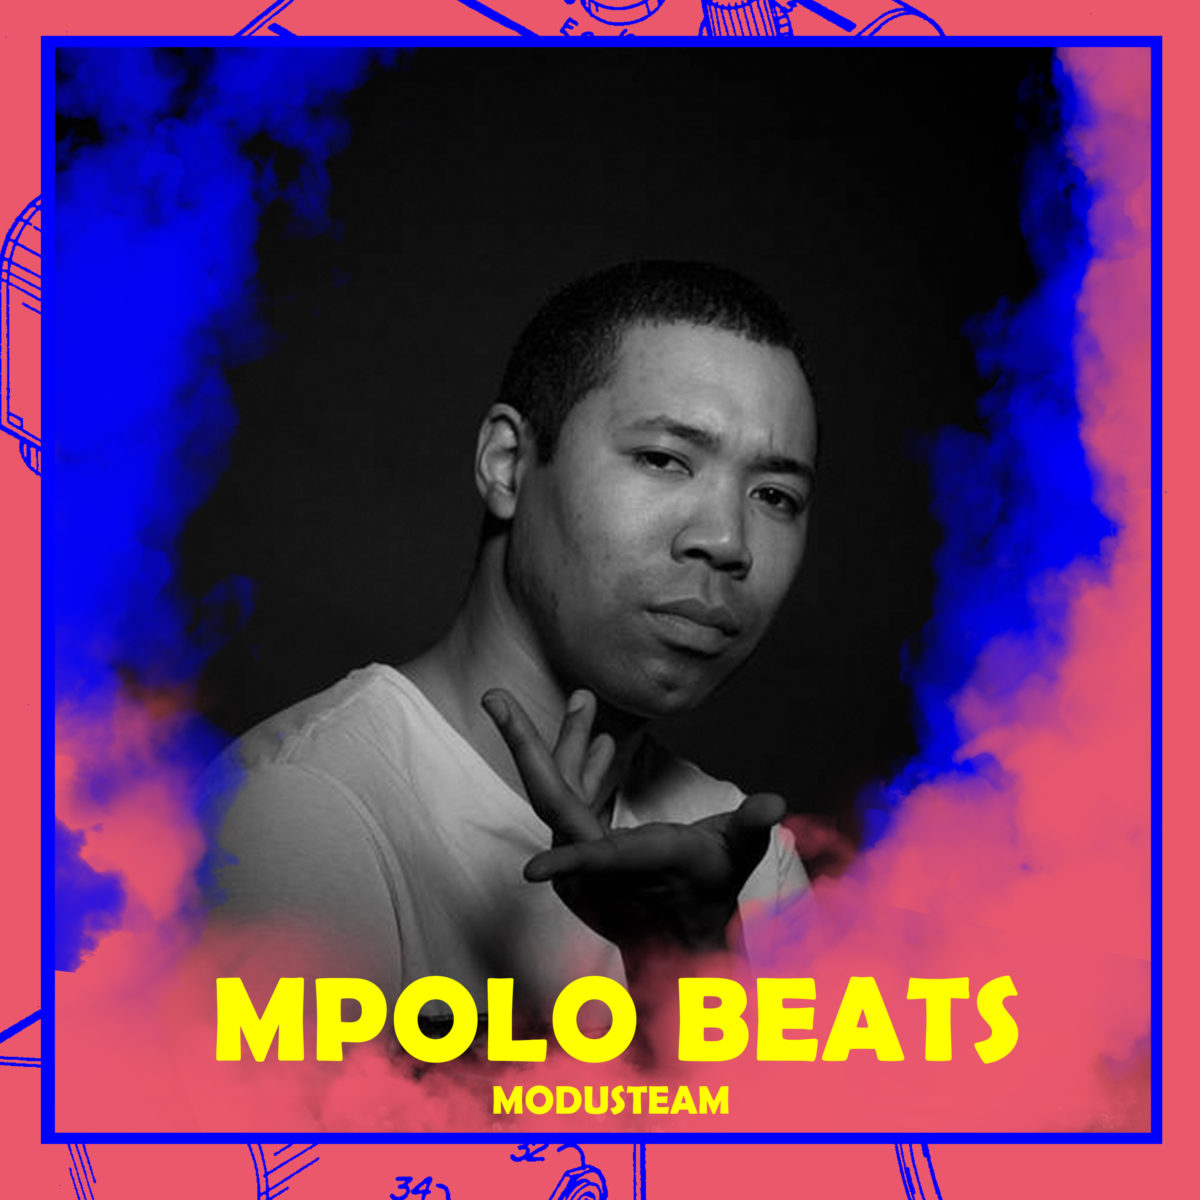 Mpolo Beats (Modusteam)